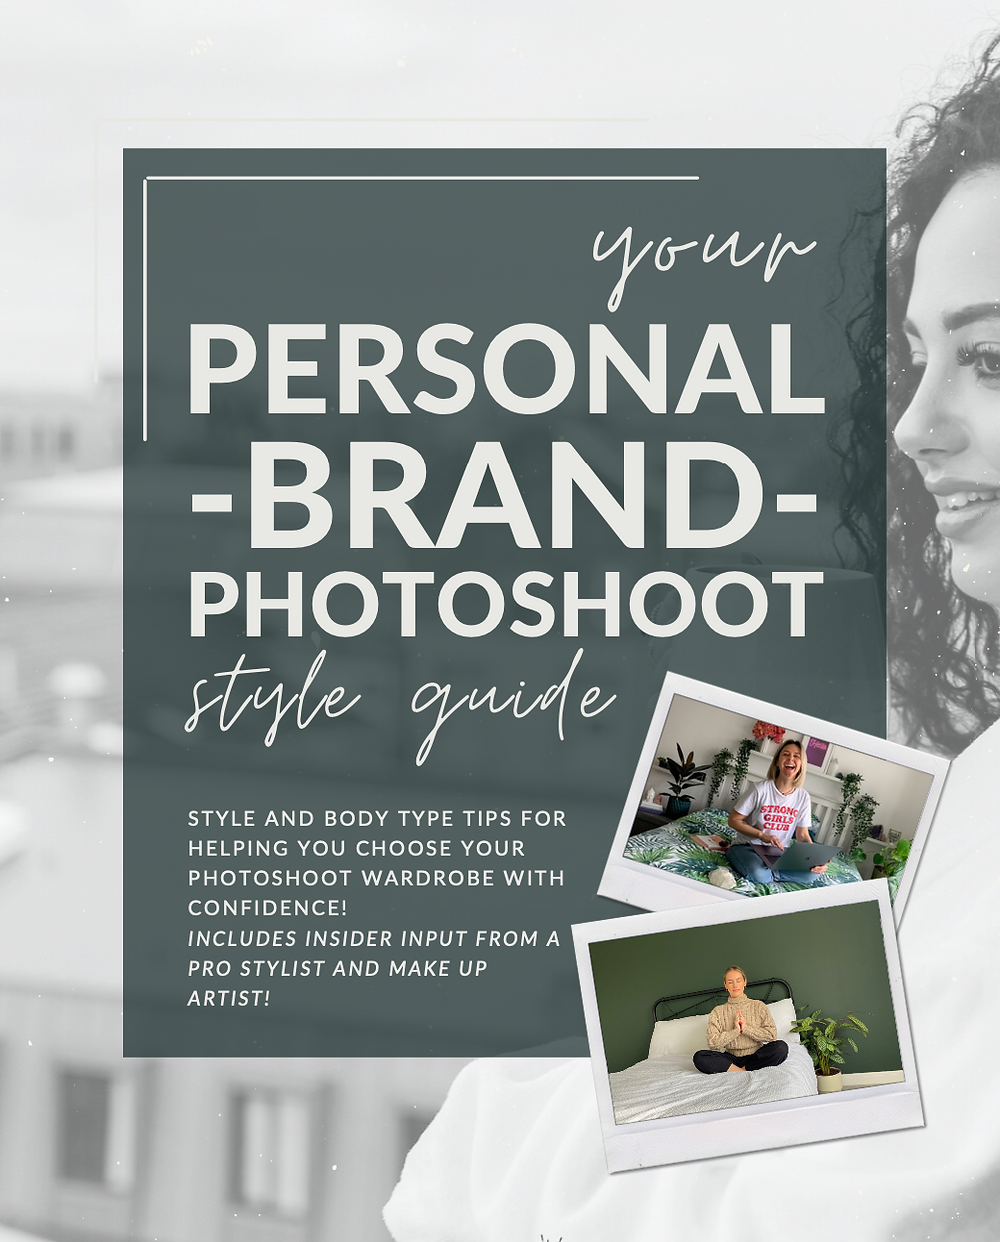 Brand Photoshoot Style Guide Cover Image